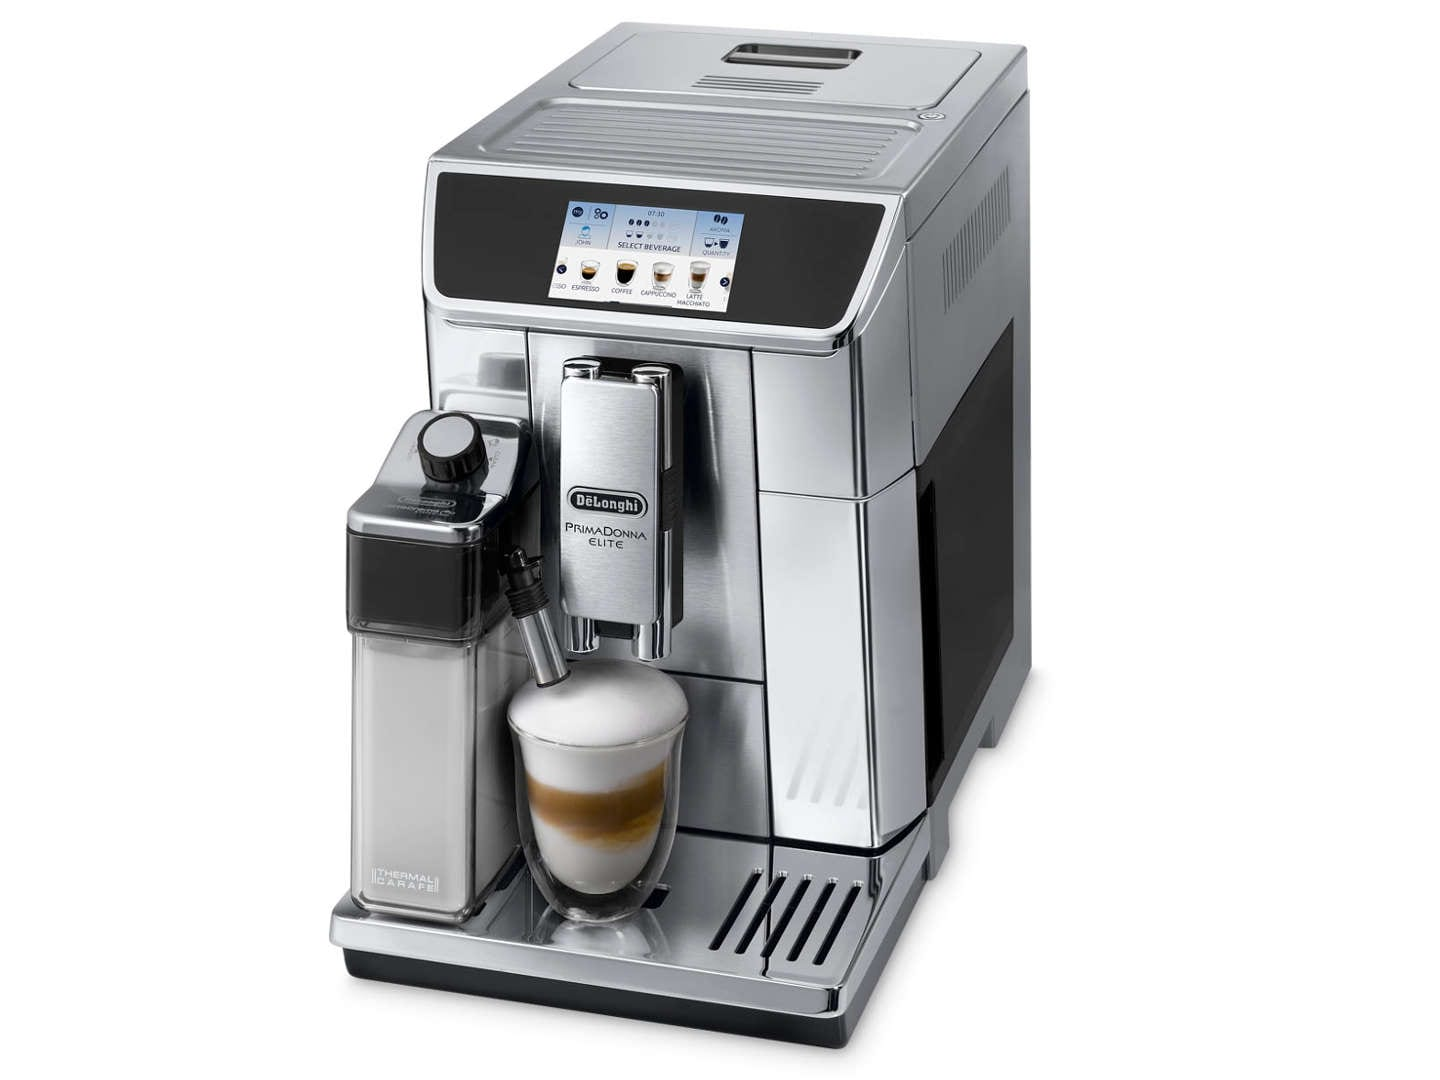 Coffee Maker Quietest : Peace and Quiet with an Evo! - Page 657 - Harley Davidson Forums